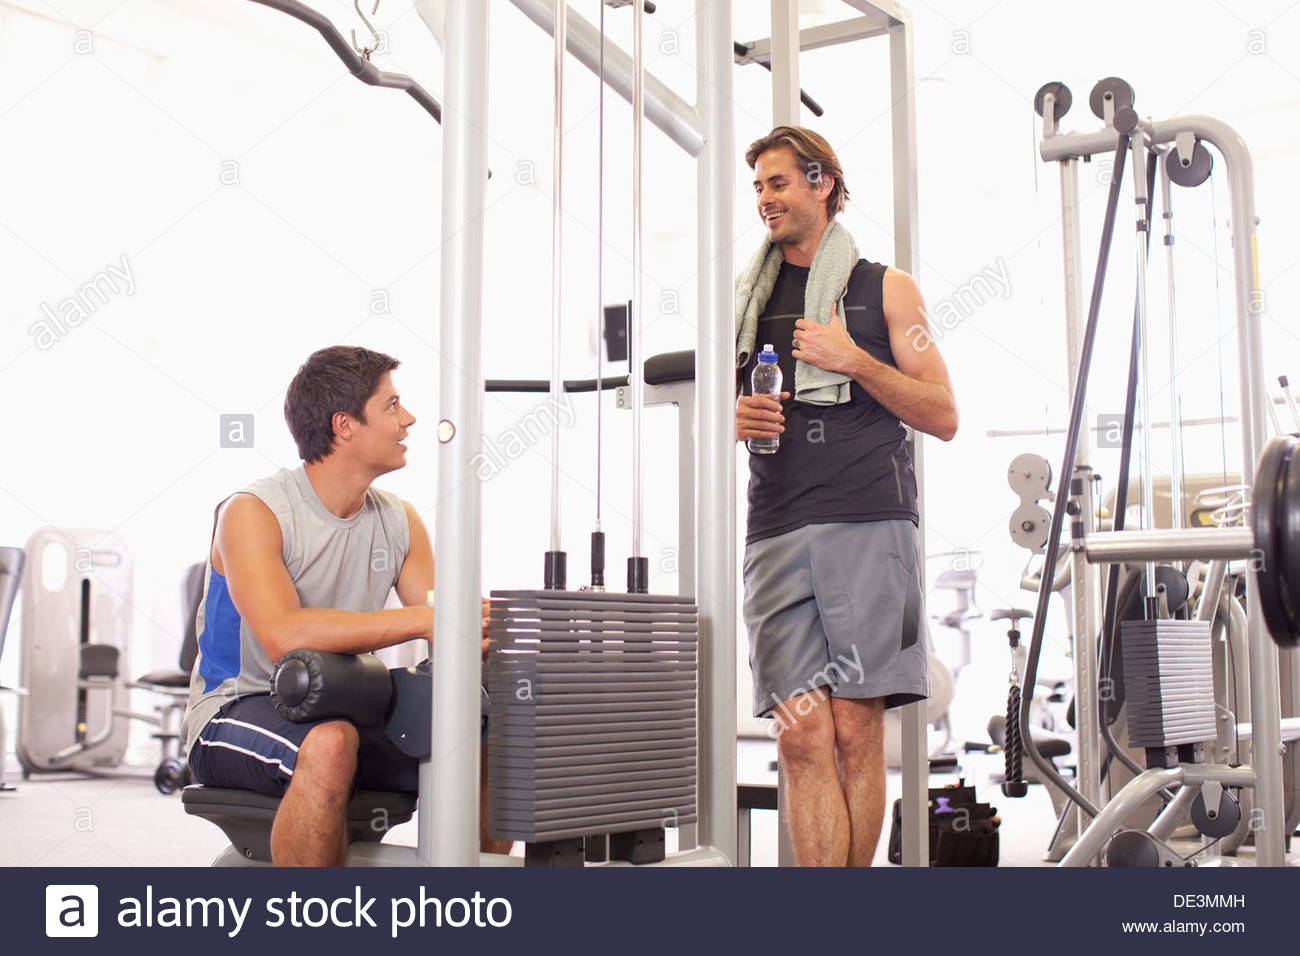 Portrait of smiling men working out in gymnasium Photo Stock